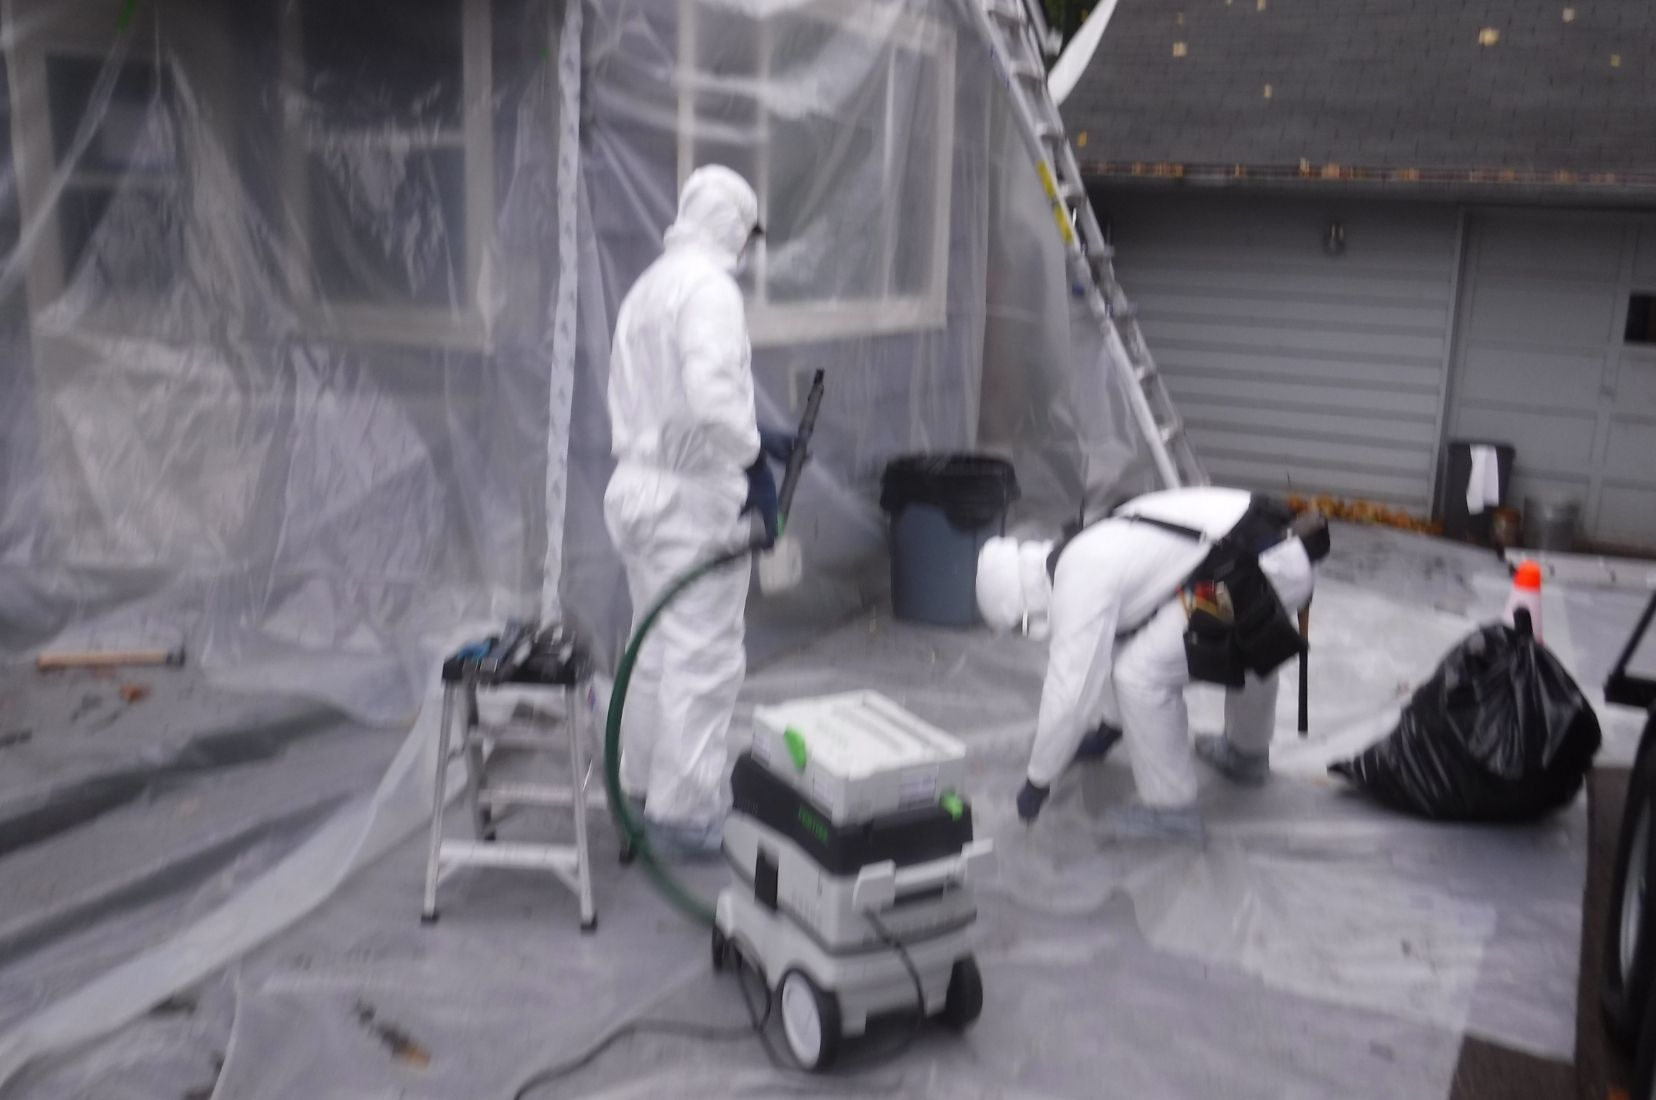 MESS Clean Up lead abatement client worksite. Serving California's Central Coast with Asbestos, Mold, Lead, and Selective Demolition